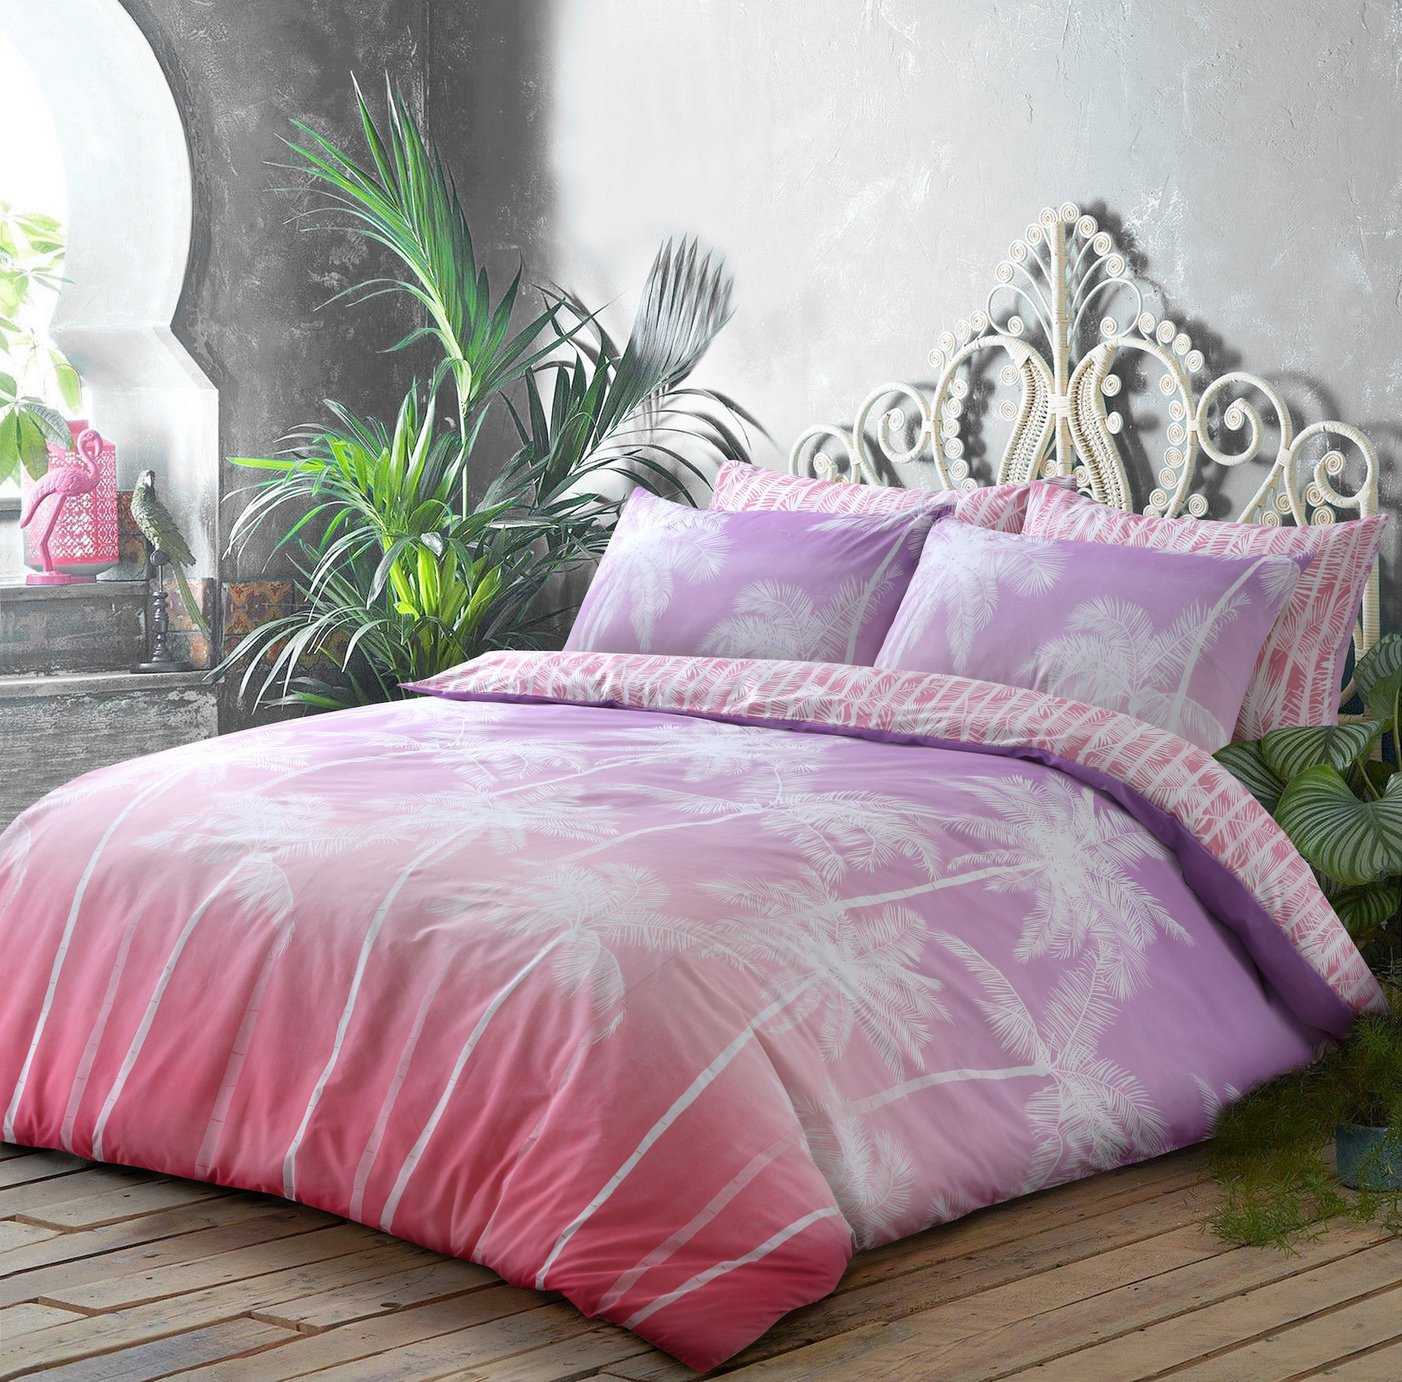 Argos Home Pink Ombre Palm Bedding Set - Double